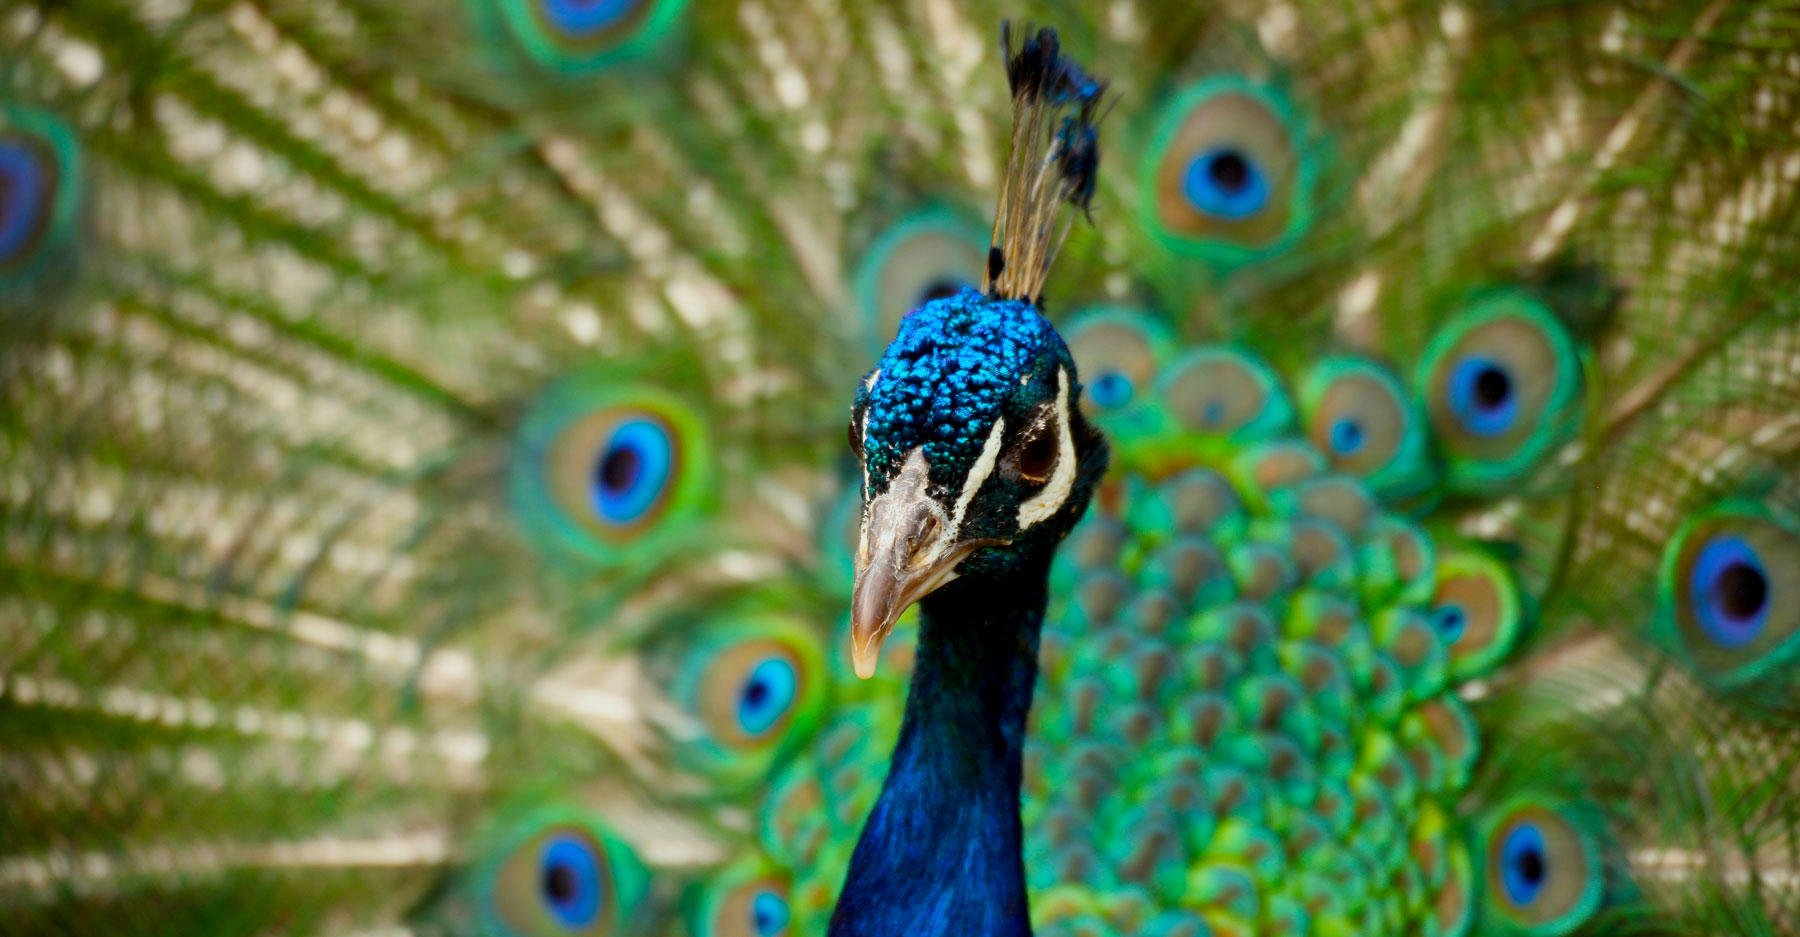 Peacock with tail displayed.